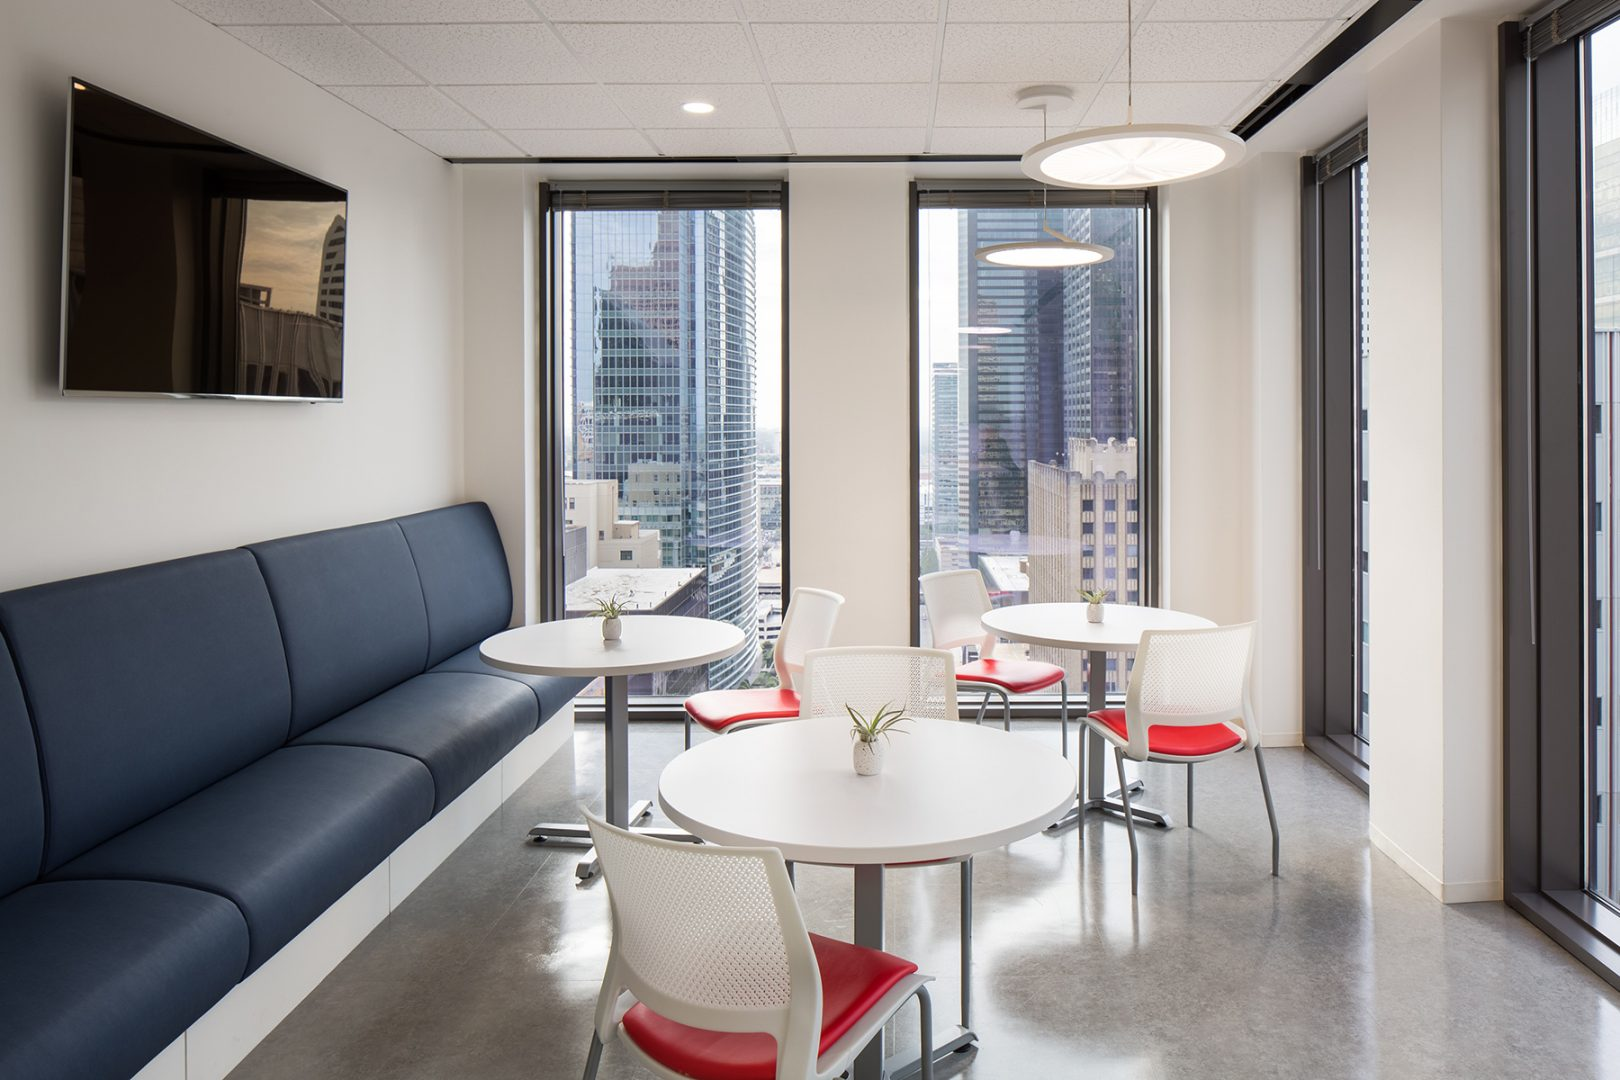 Corporate Interior Law Design McFarland Houston Breakroom Seating Banquette and tables